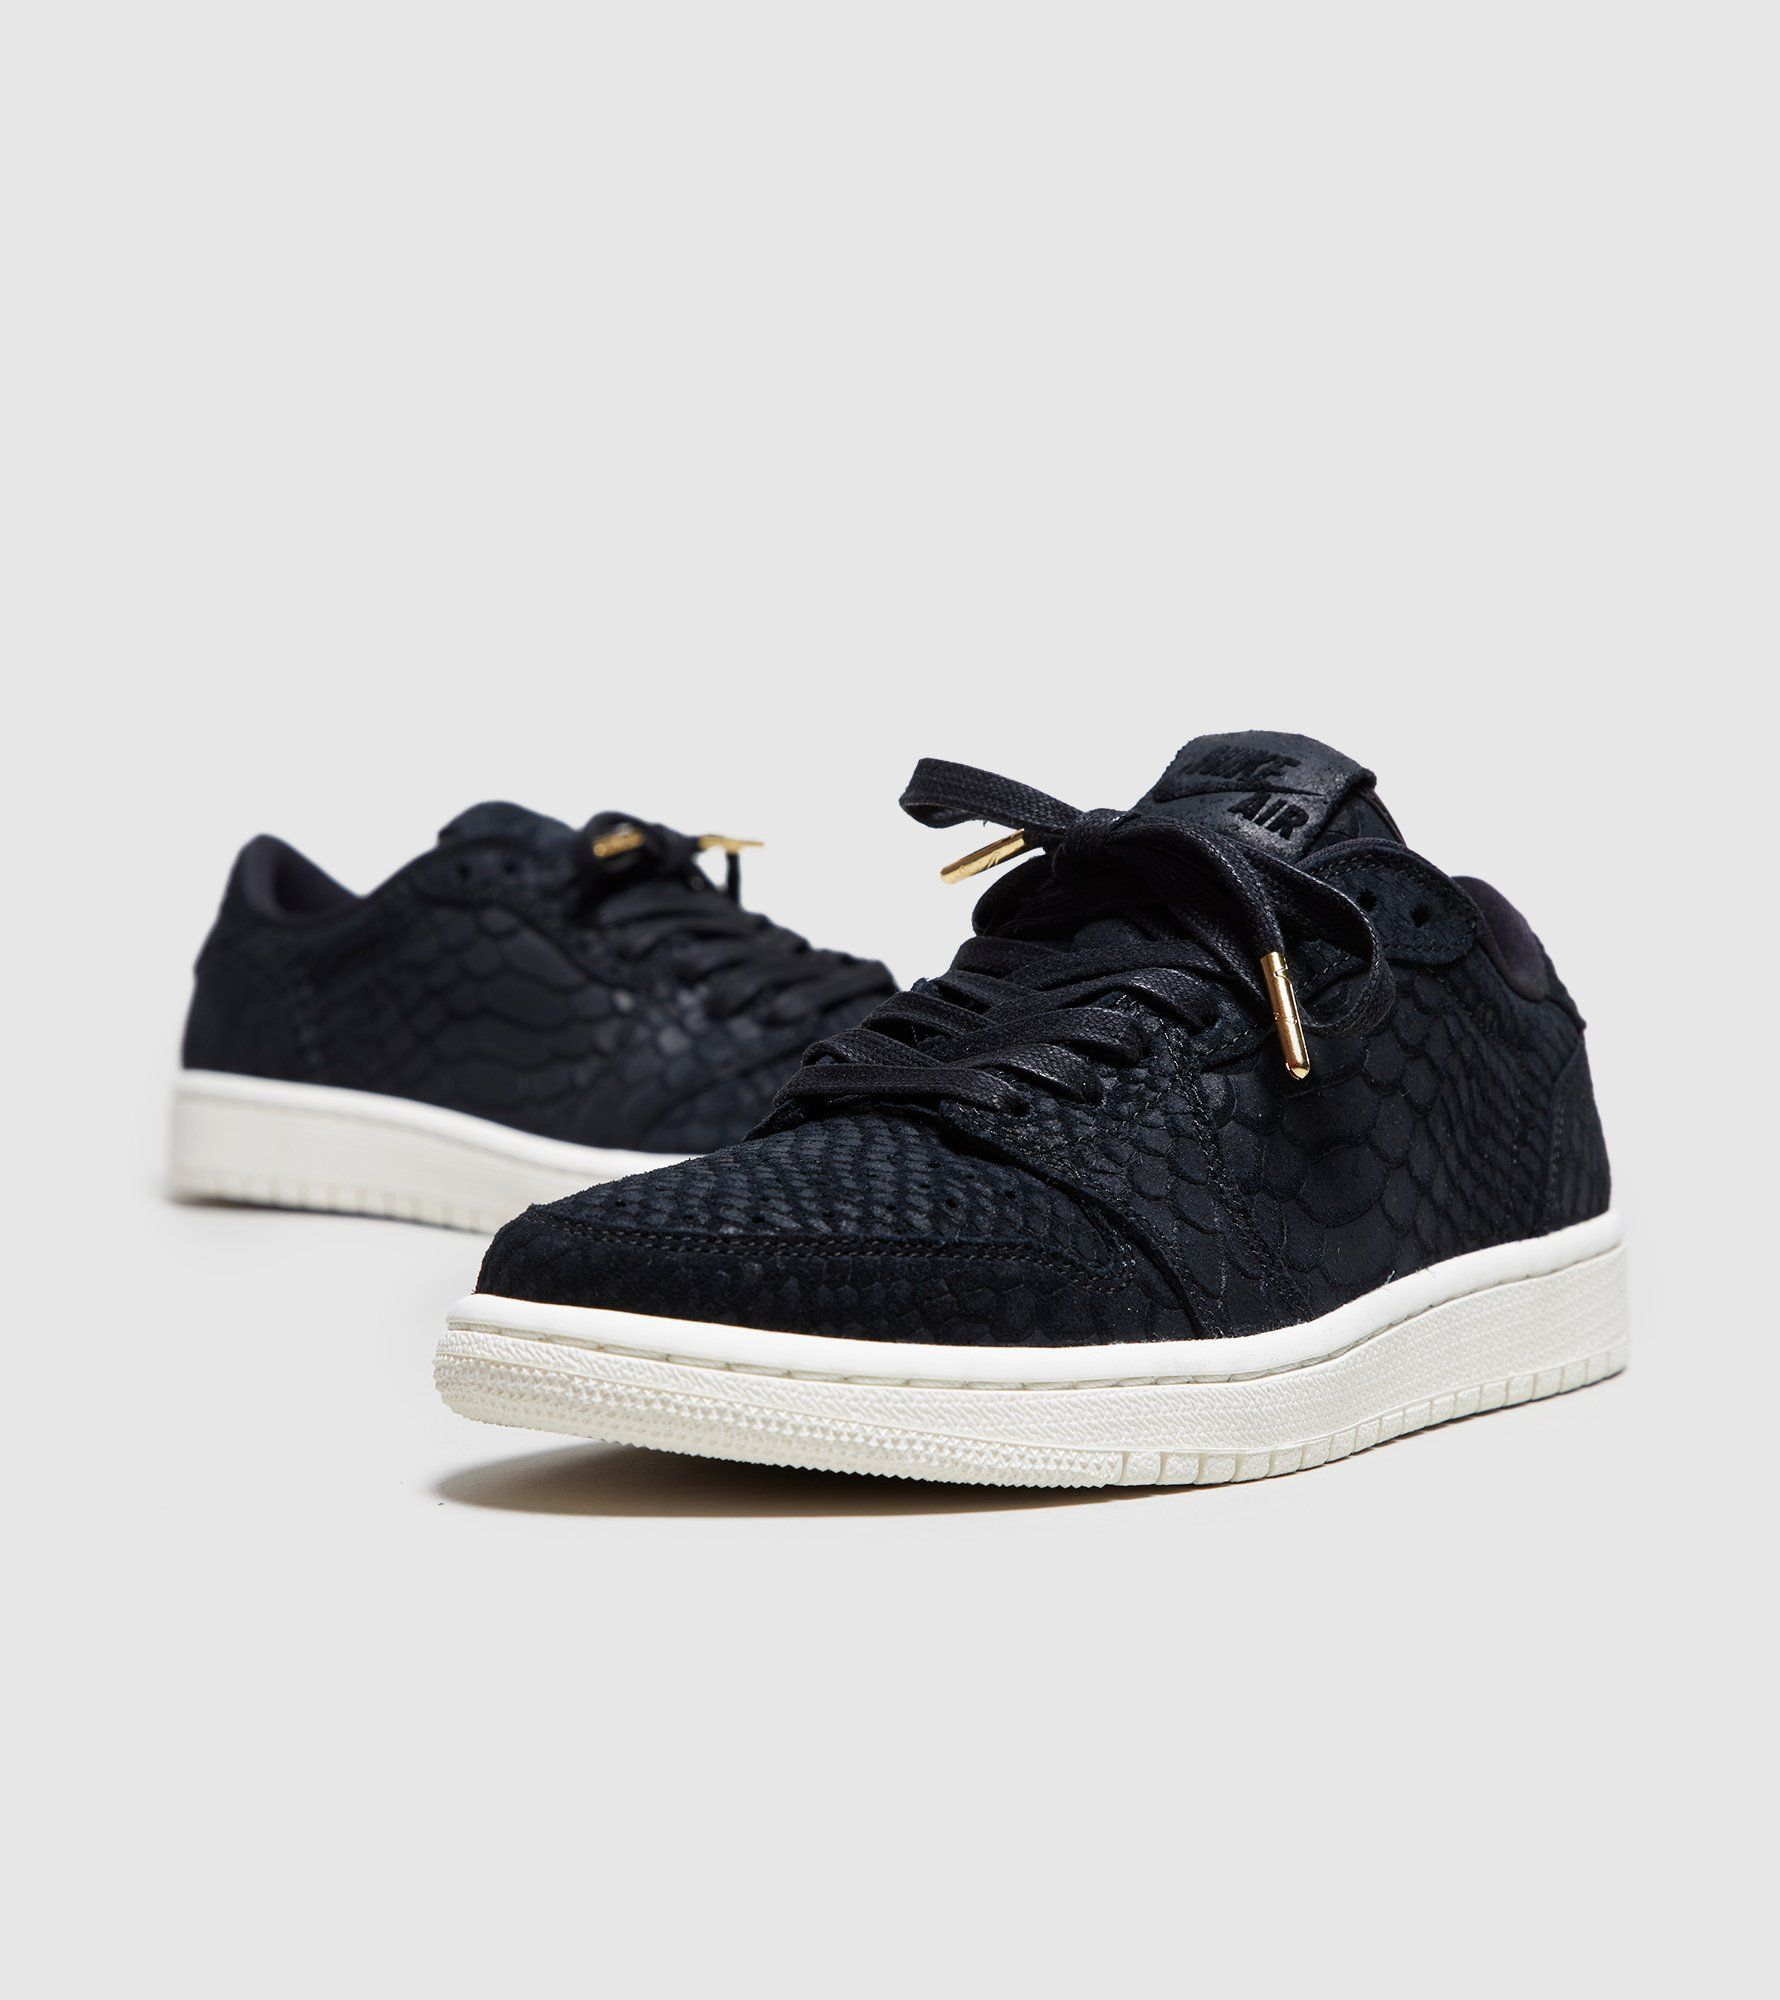 Jordan 1 Retro Low No Swoosh Women's